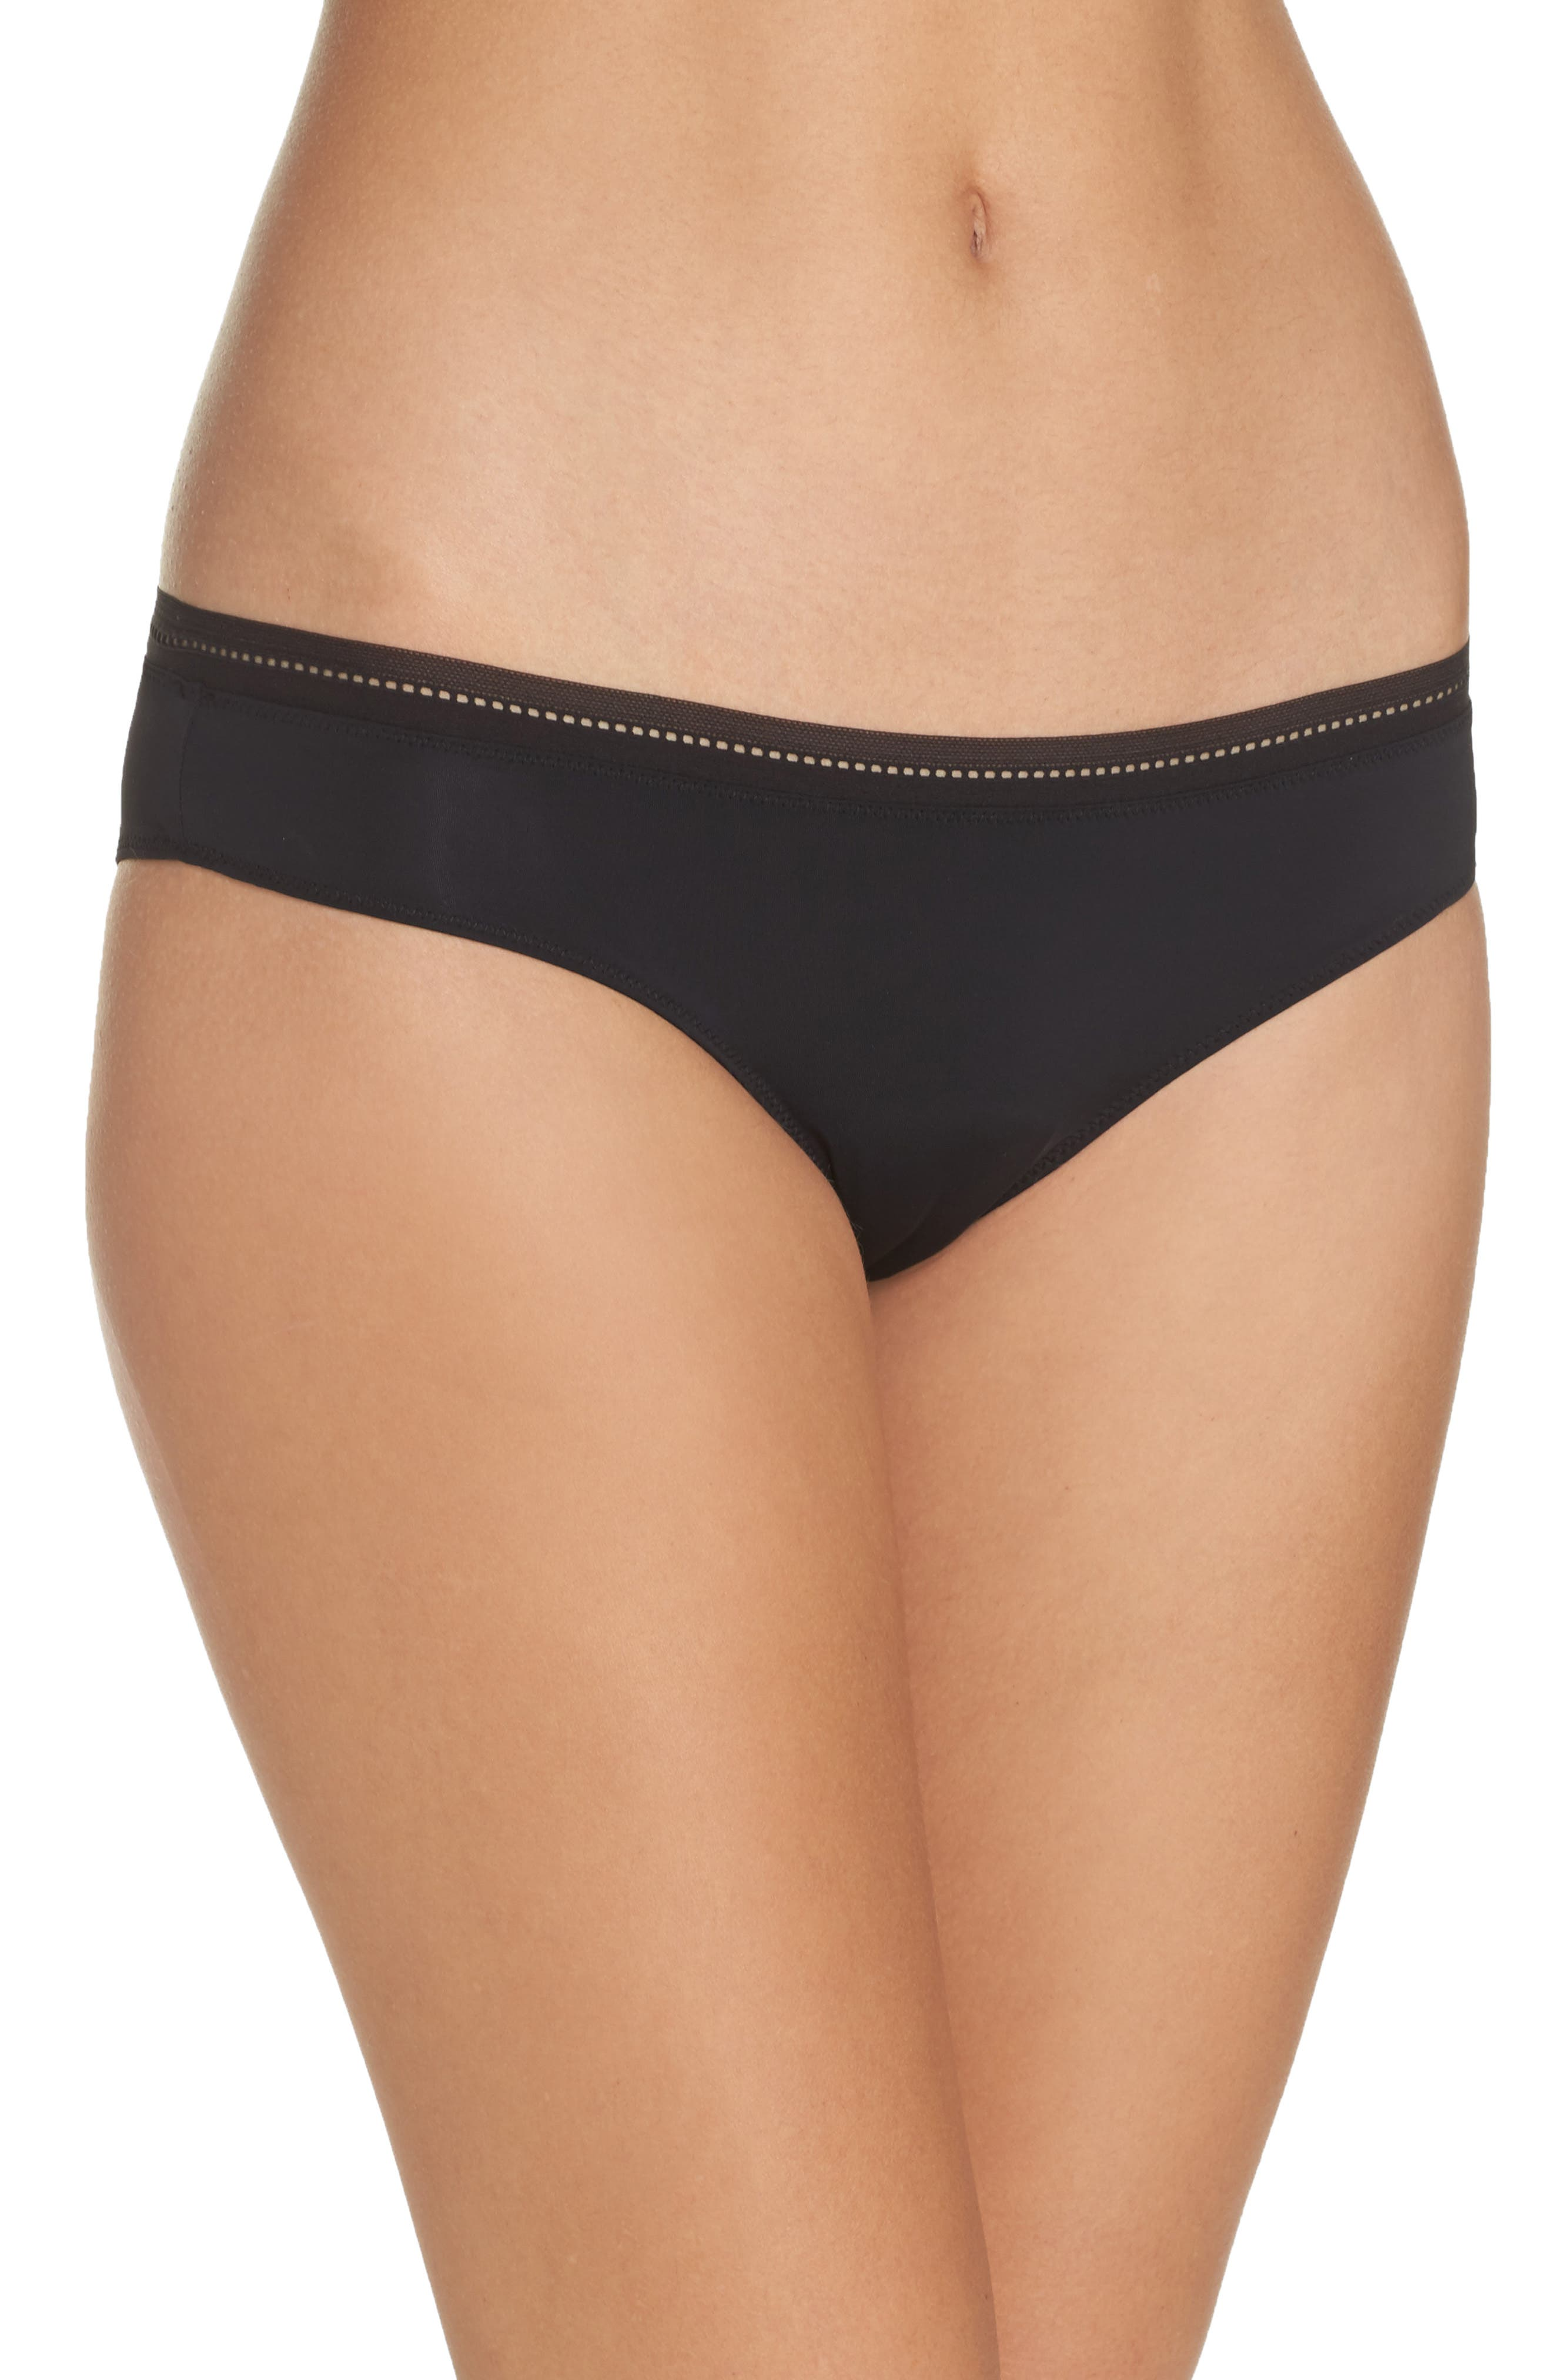 Intimately FP Truth Or Dare Tanga,                         Main,                         color, 001